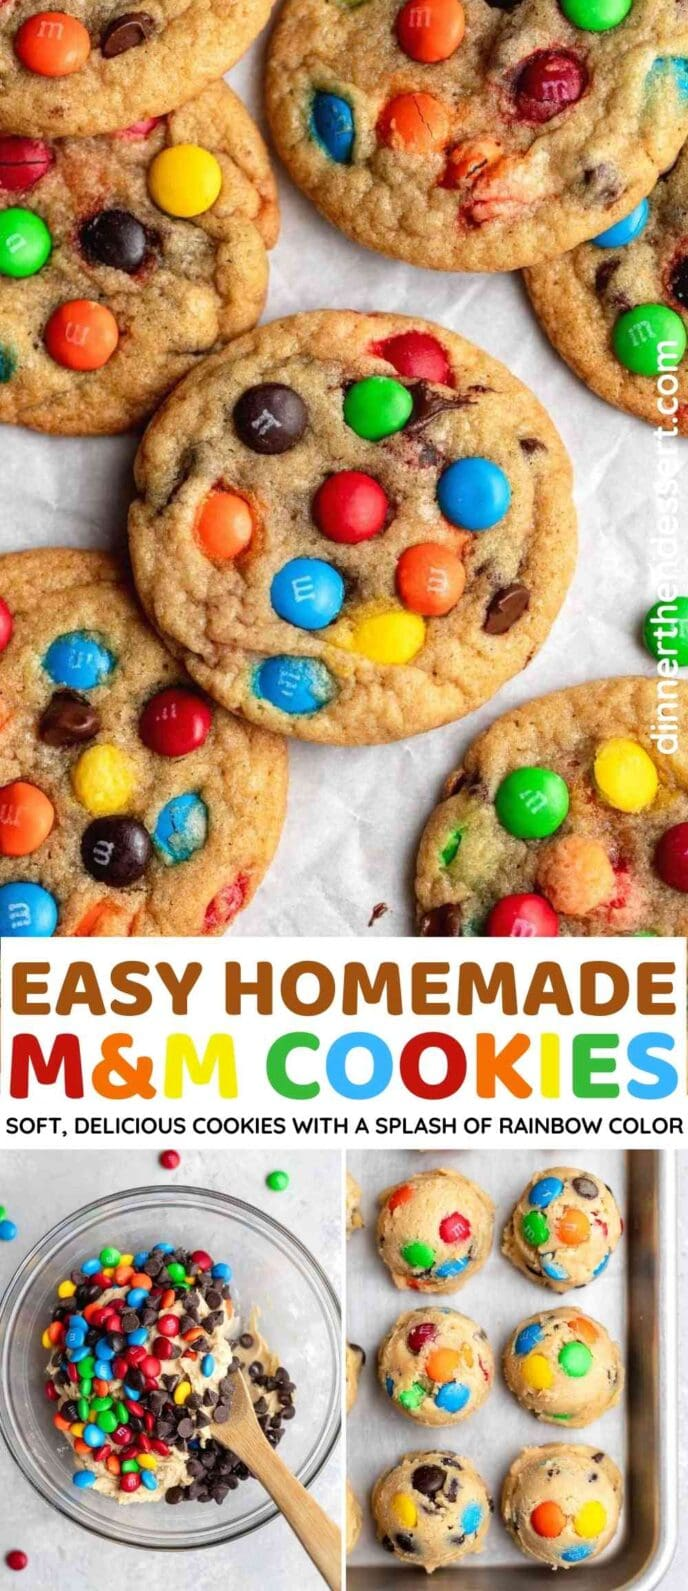 M&M Cookies collage